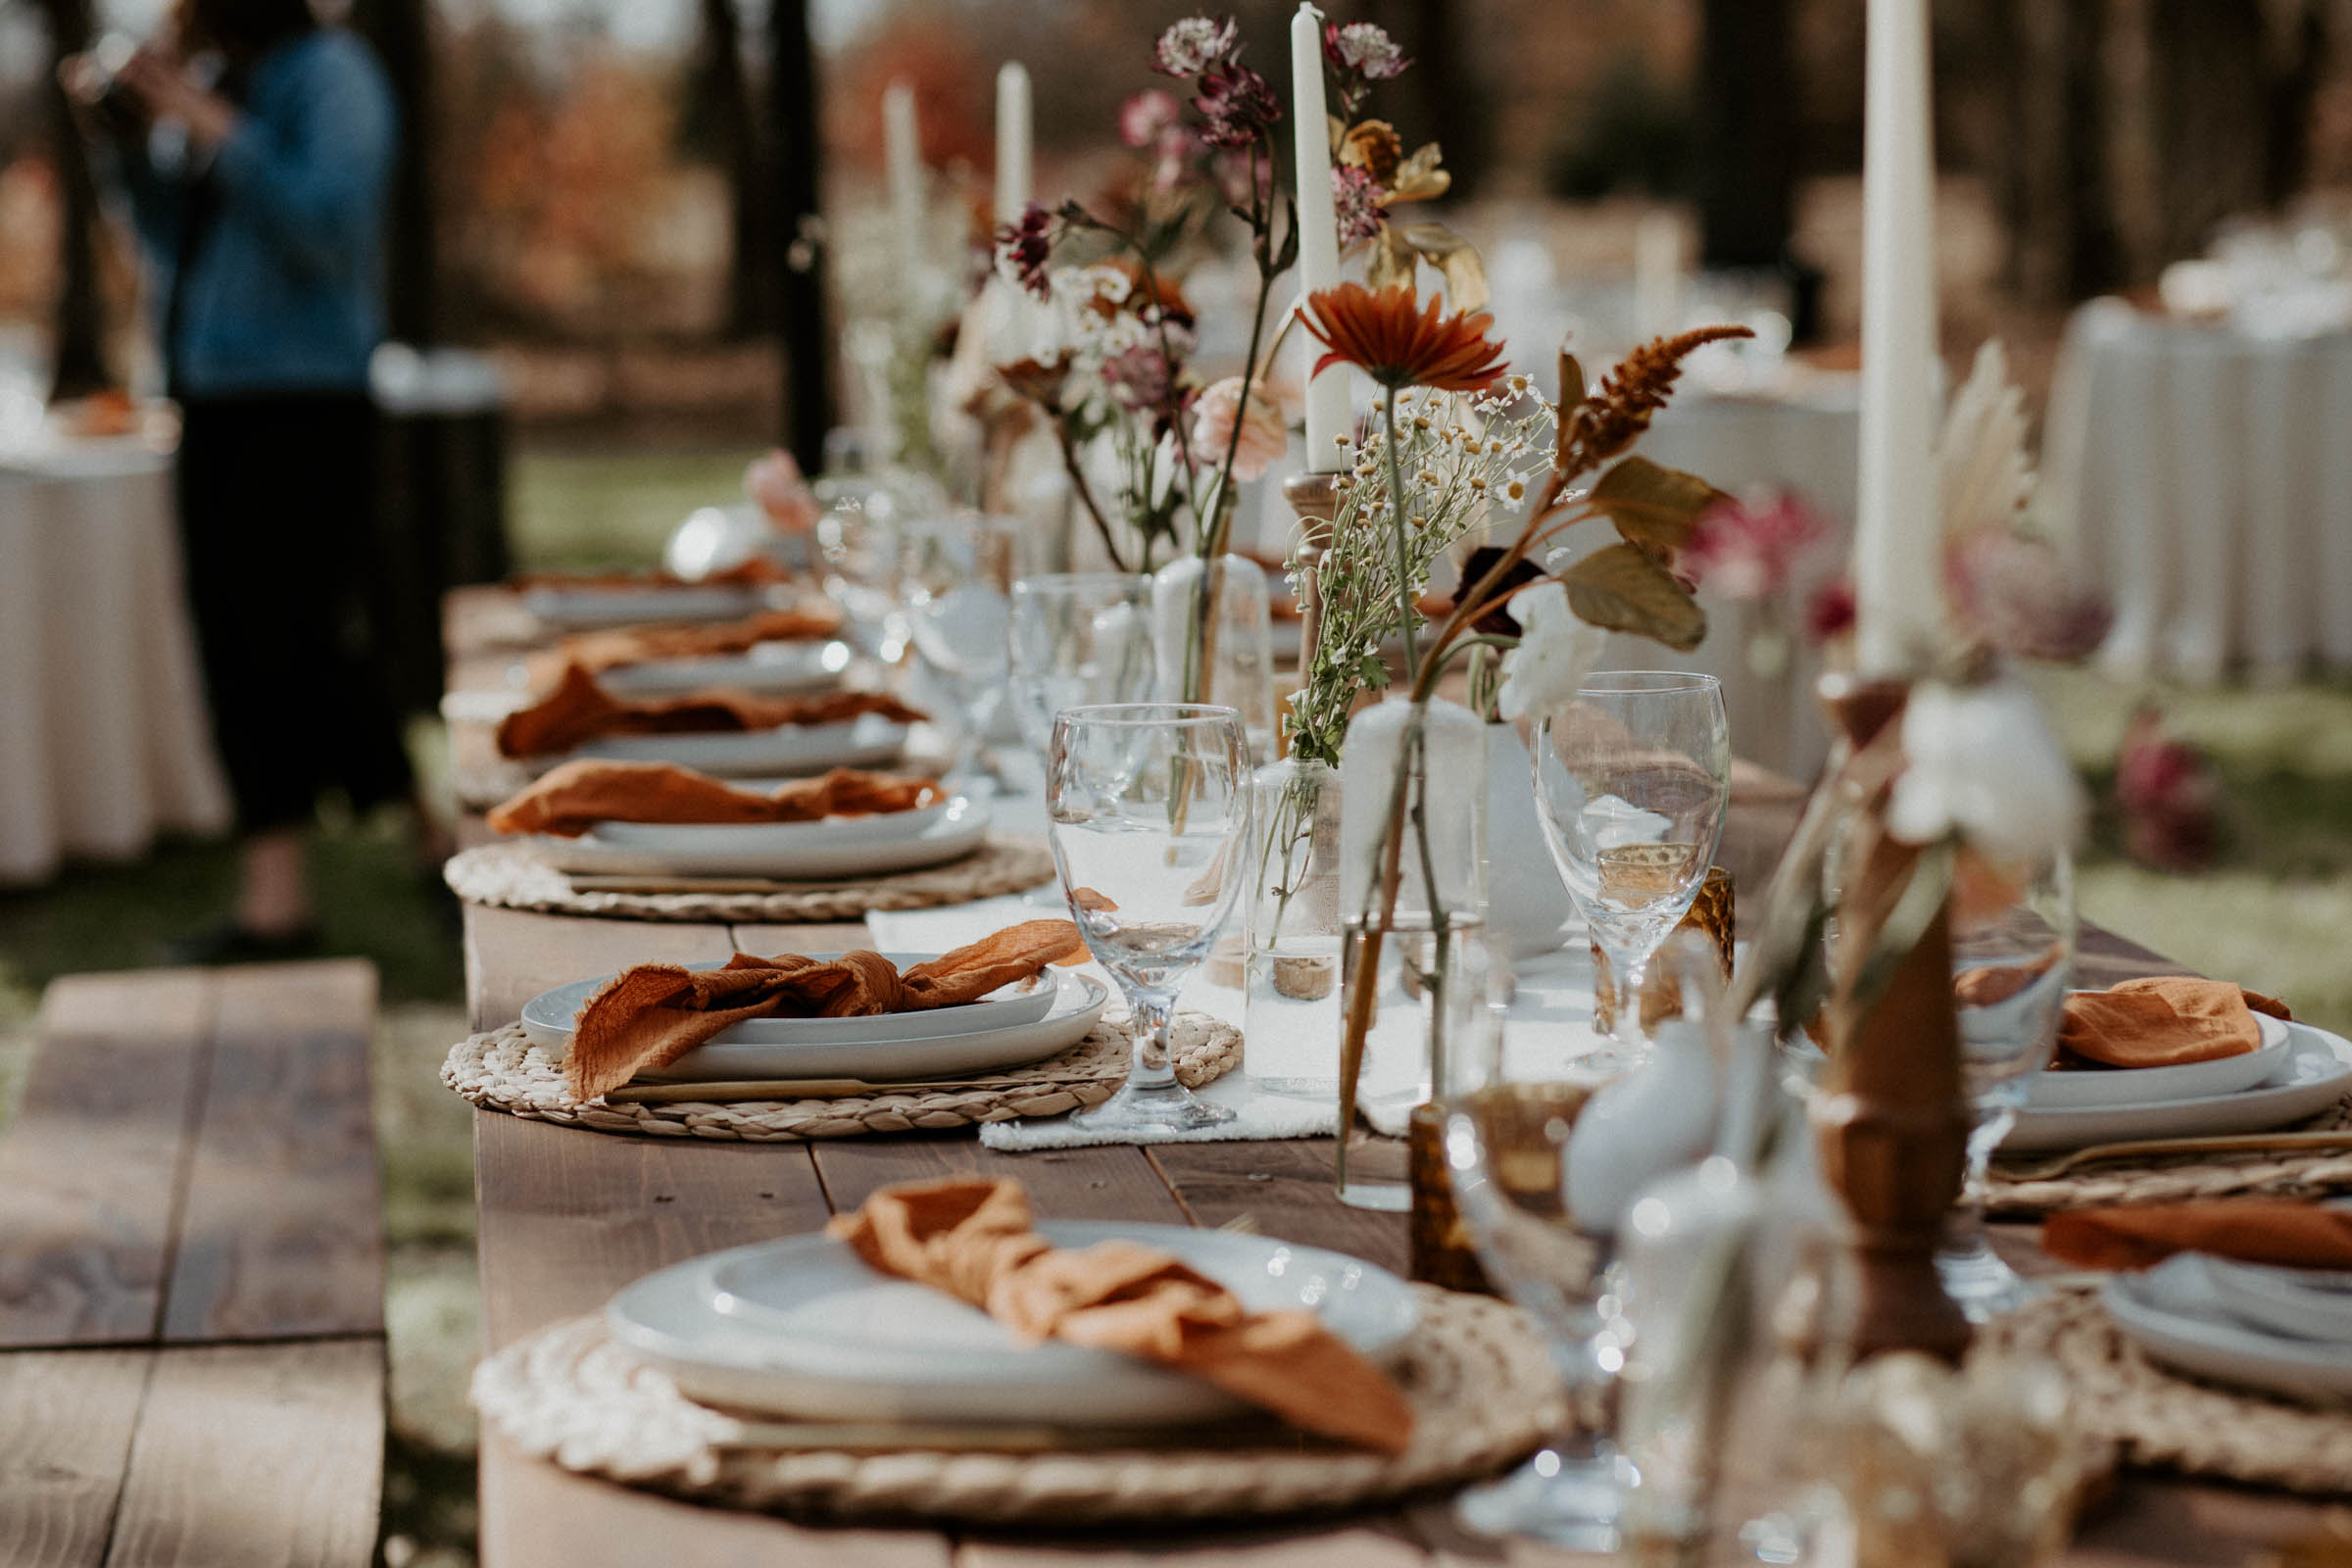 Classy backyard wedding decor for a bohemian bride in Fort Worth texas